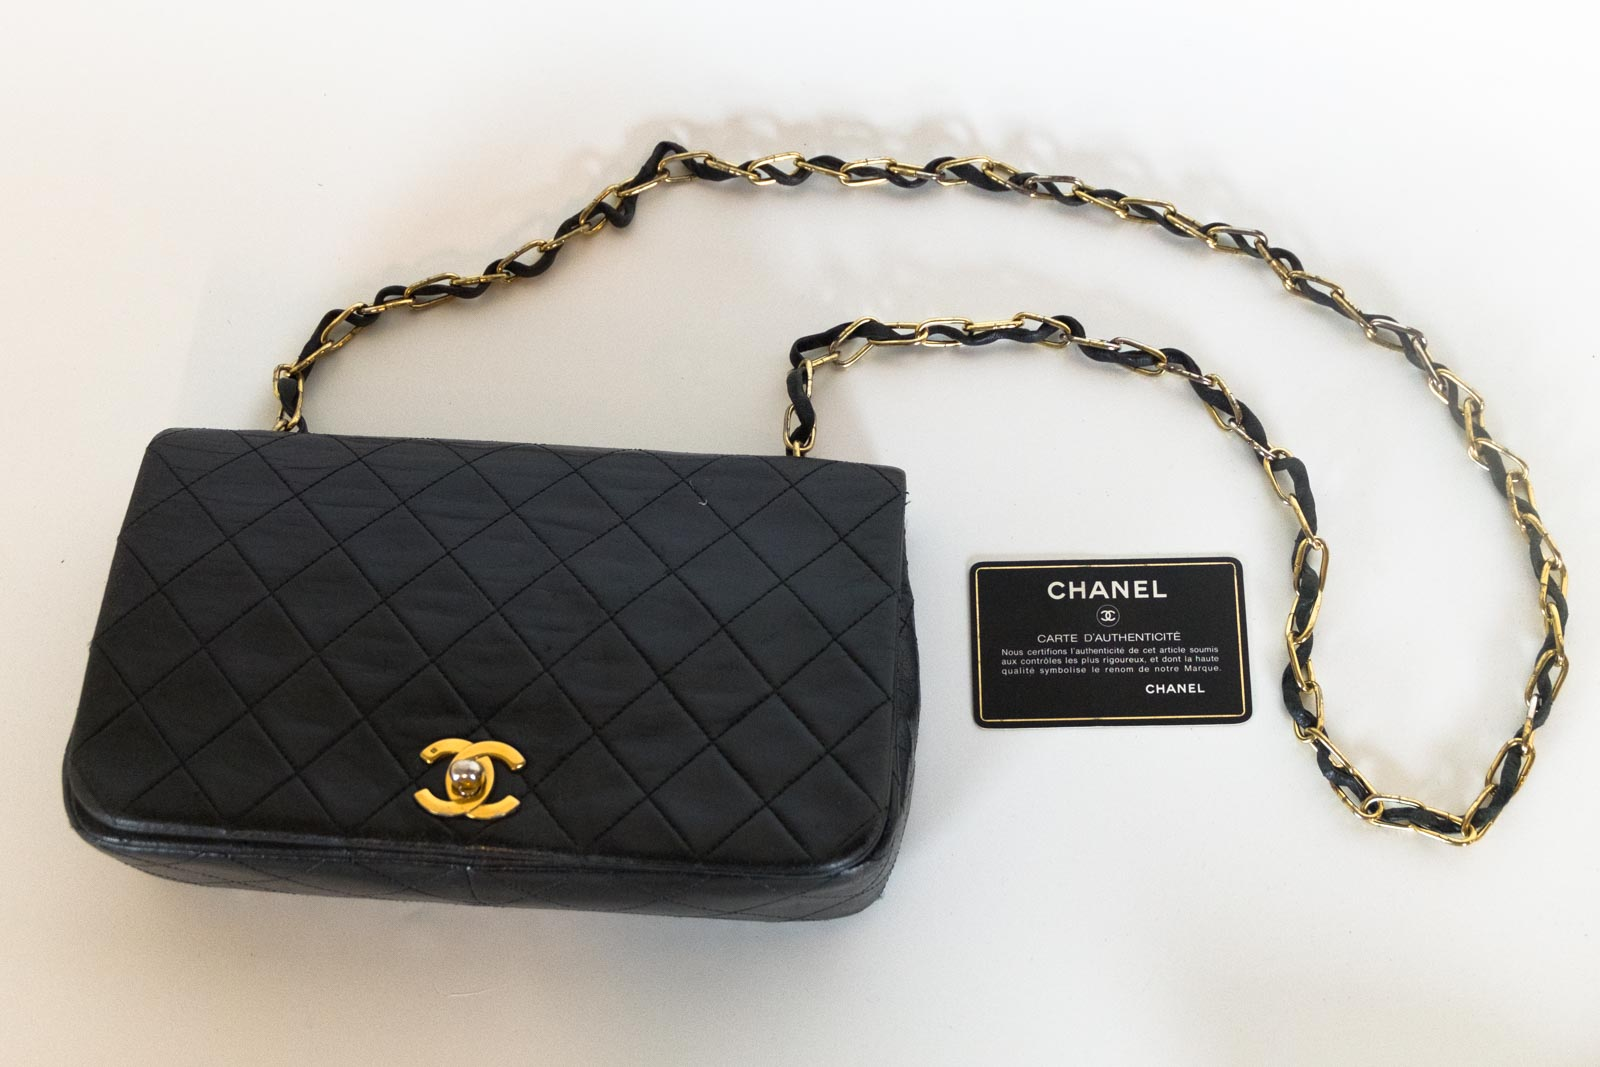 da499b598788 Details about CHANEL Vintage Black Classic Lambskin Quilted Full Flap  Shoulder Bag Handbag